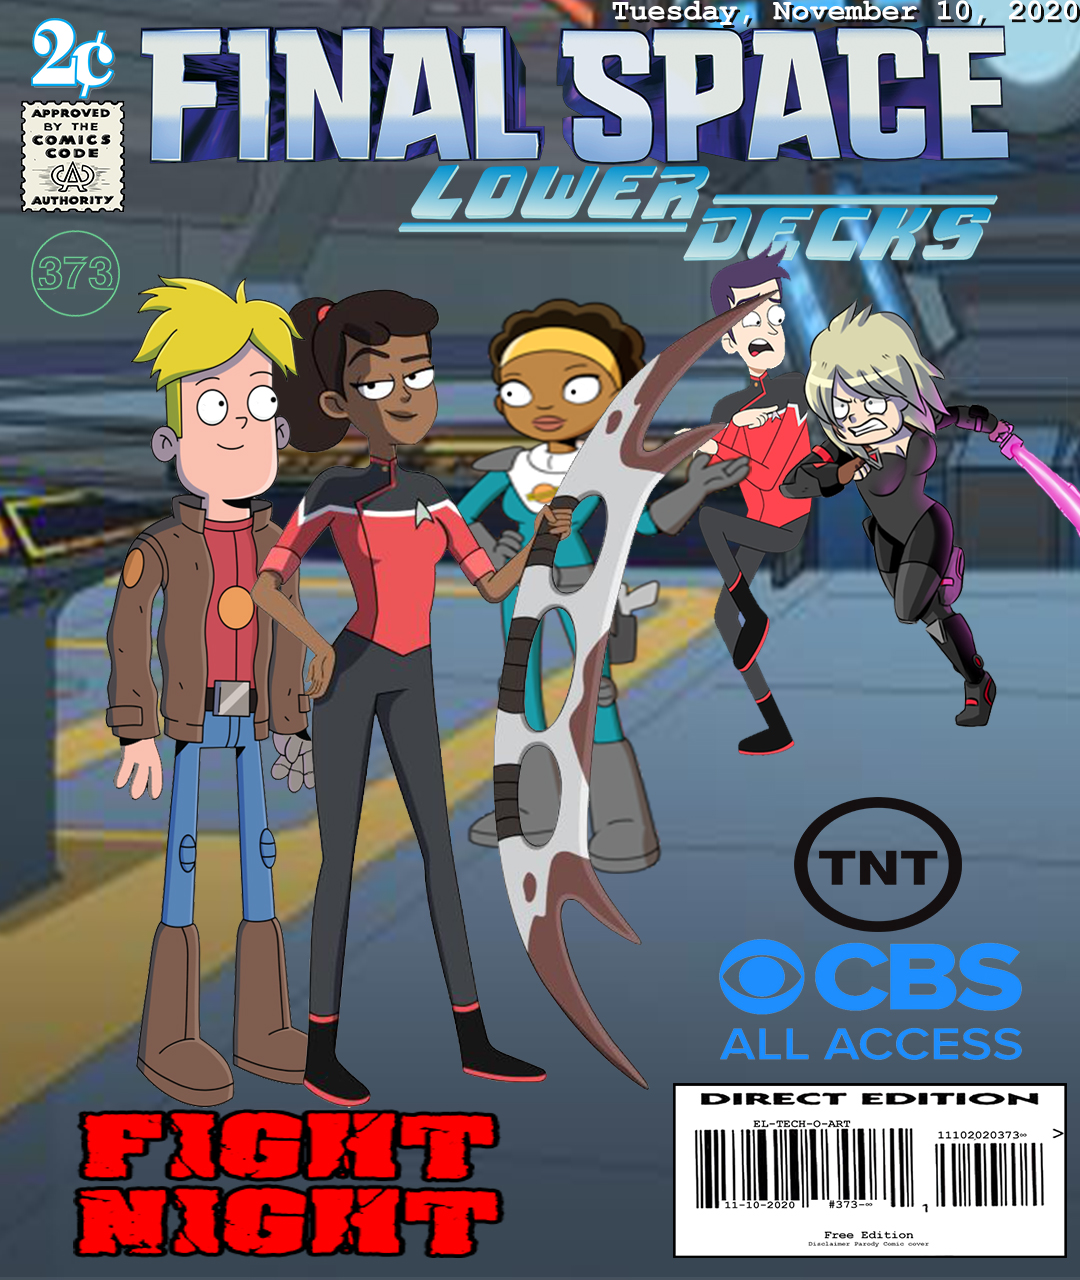 Fan Photoshop Edit Comic Cover Of Final Space and Star Trek Lower Decks